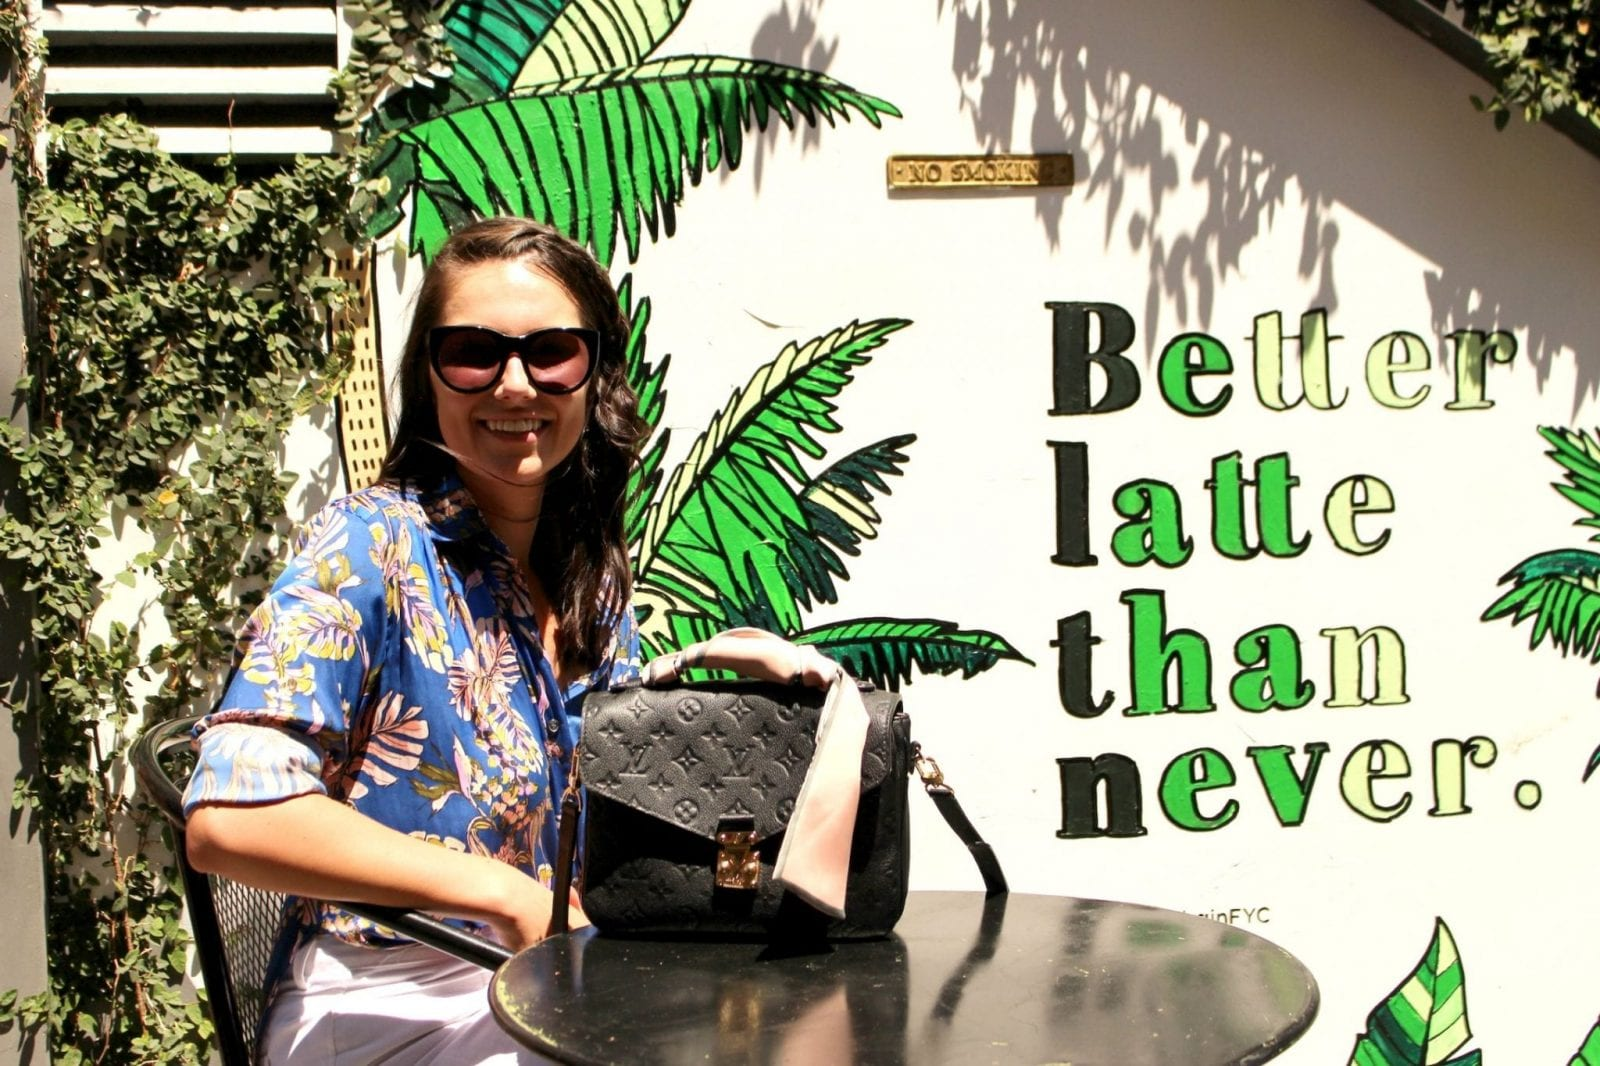 This is a photo of me sitting at a coffee table with my hawaiian shirt and my Louis Vuitton bag in Los Angeles.